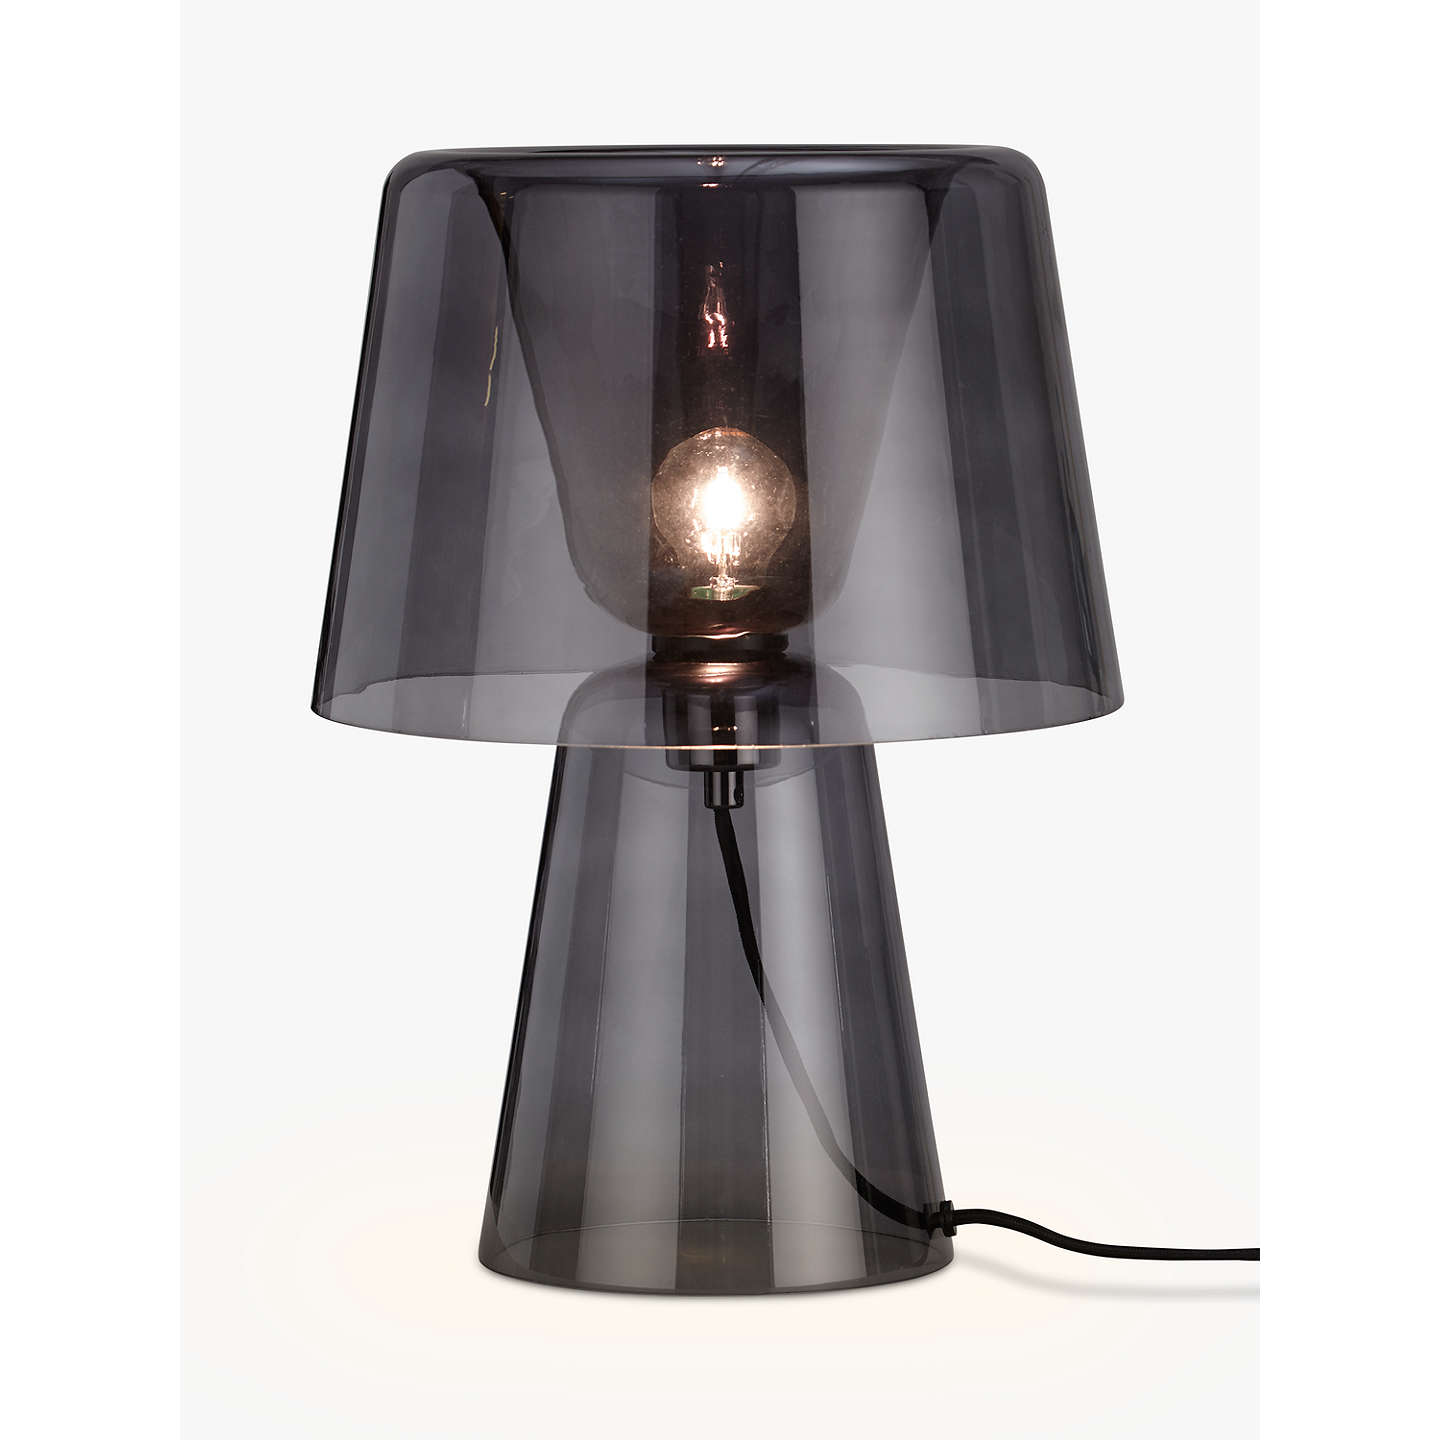 design project by john lewis no 001 large glass table lamp at john lewis